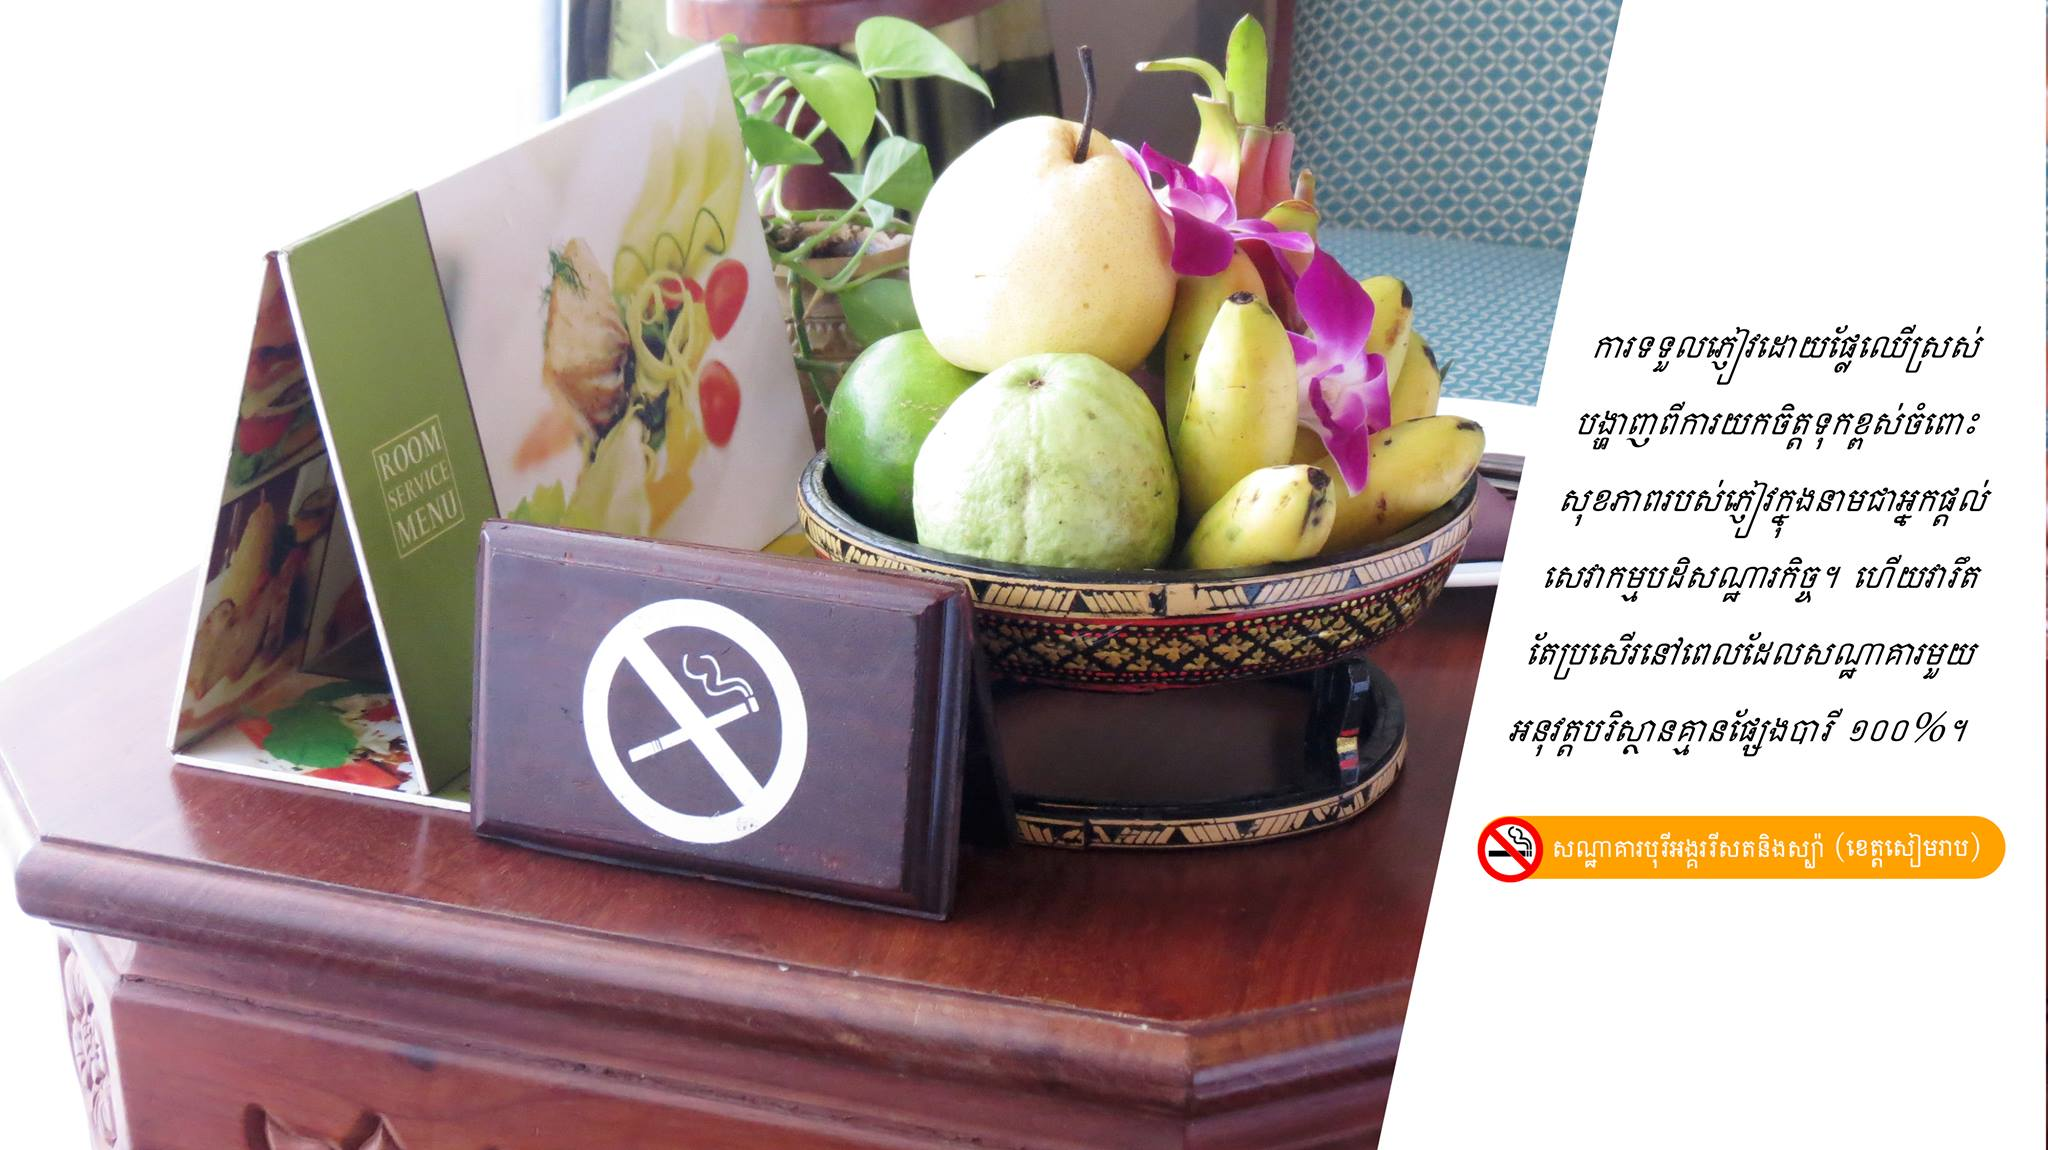 A SMOKE-FREE HOTEL IN SIEM REAP AT BOREI ANGKOR RESORT & SPA